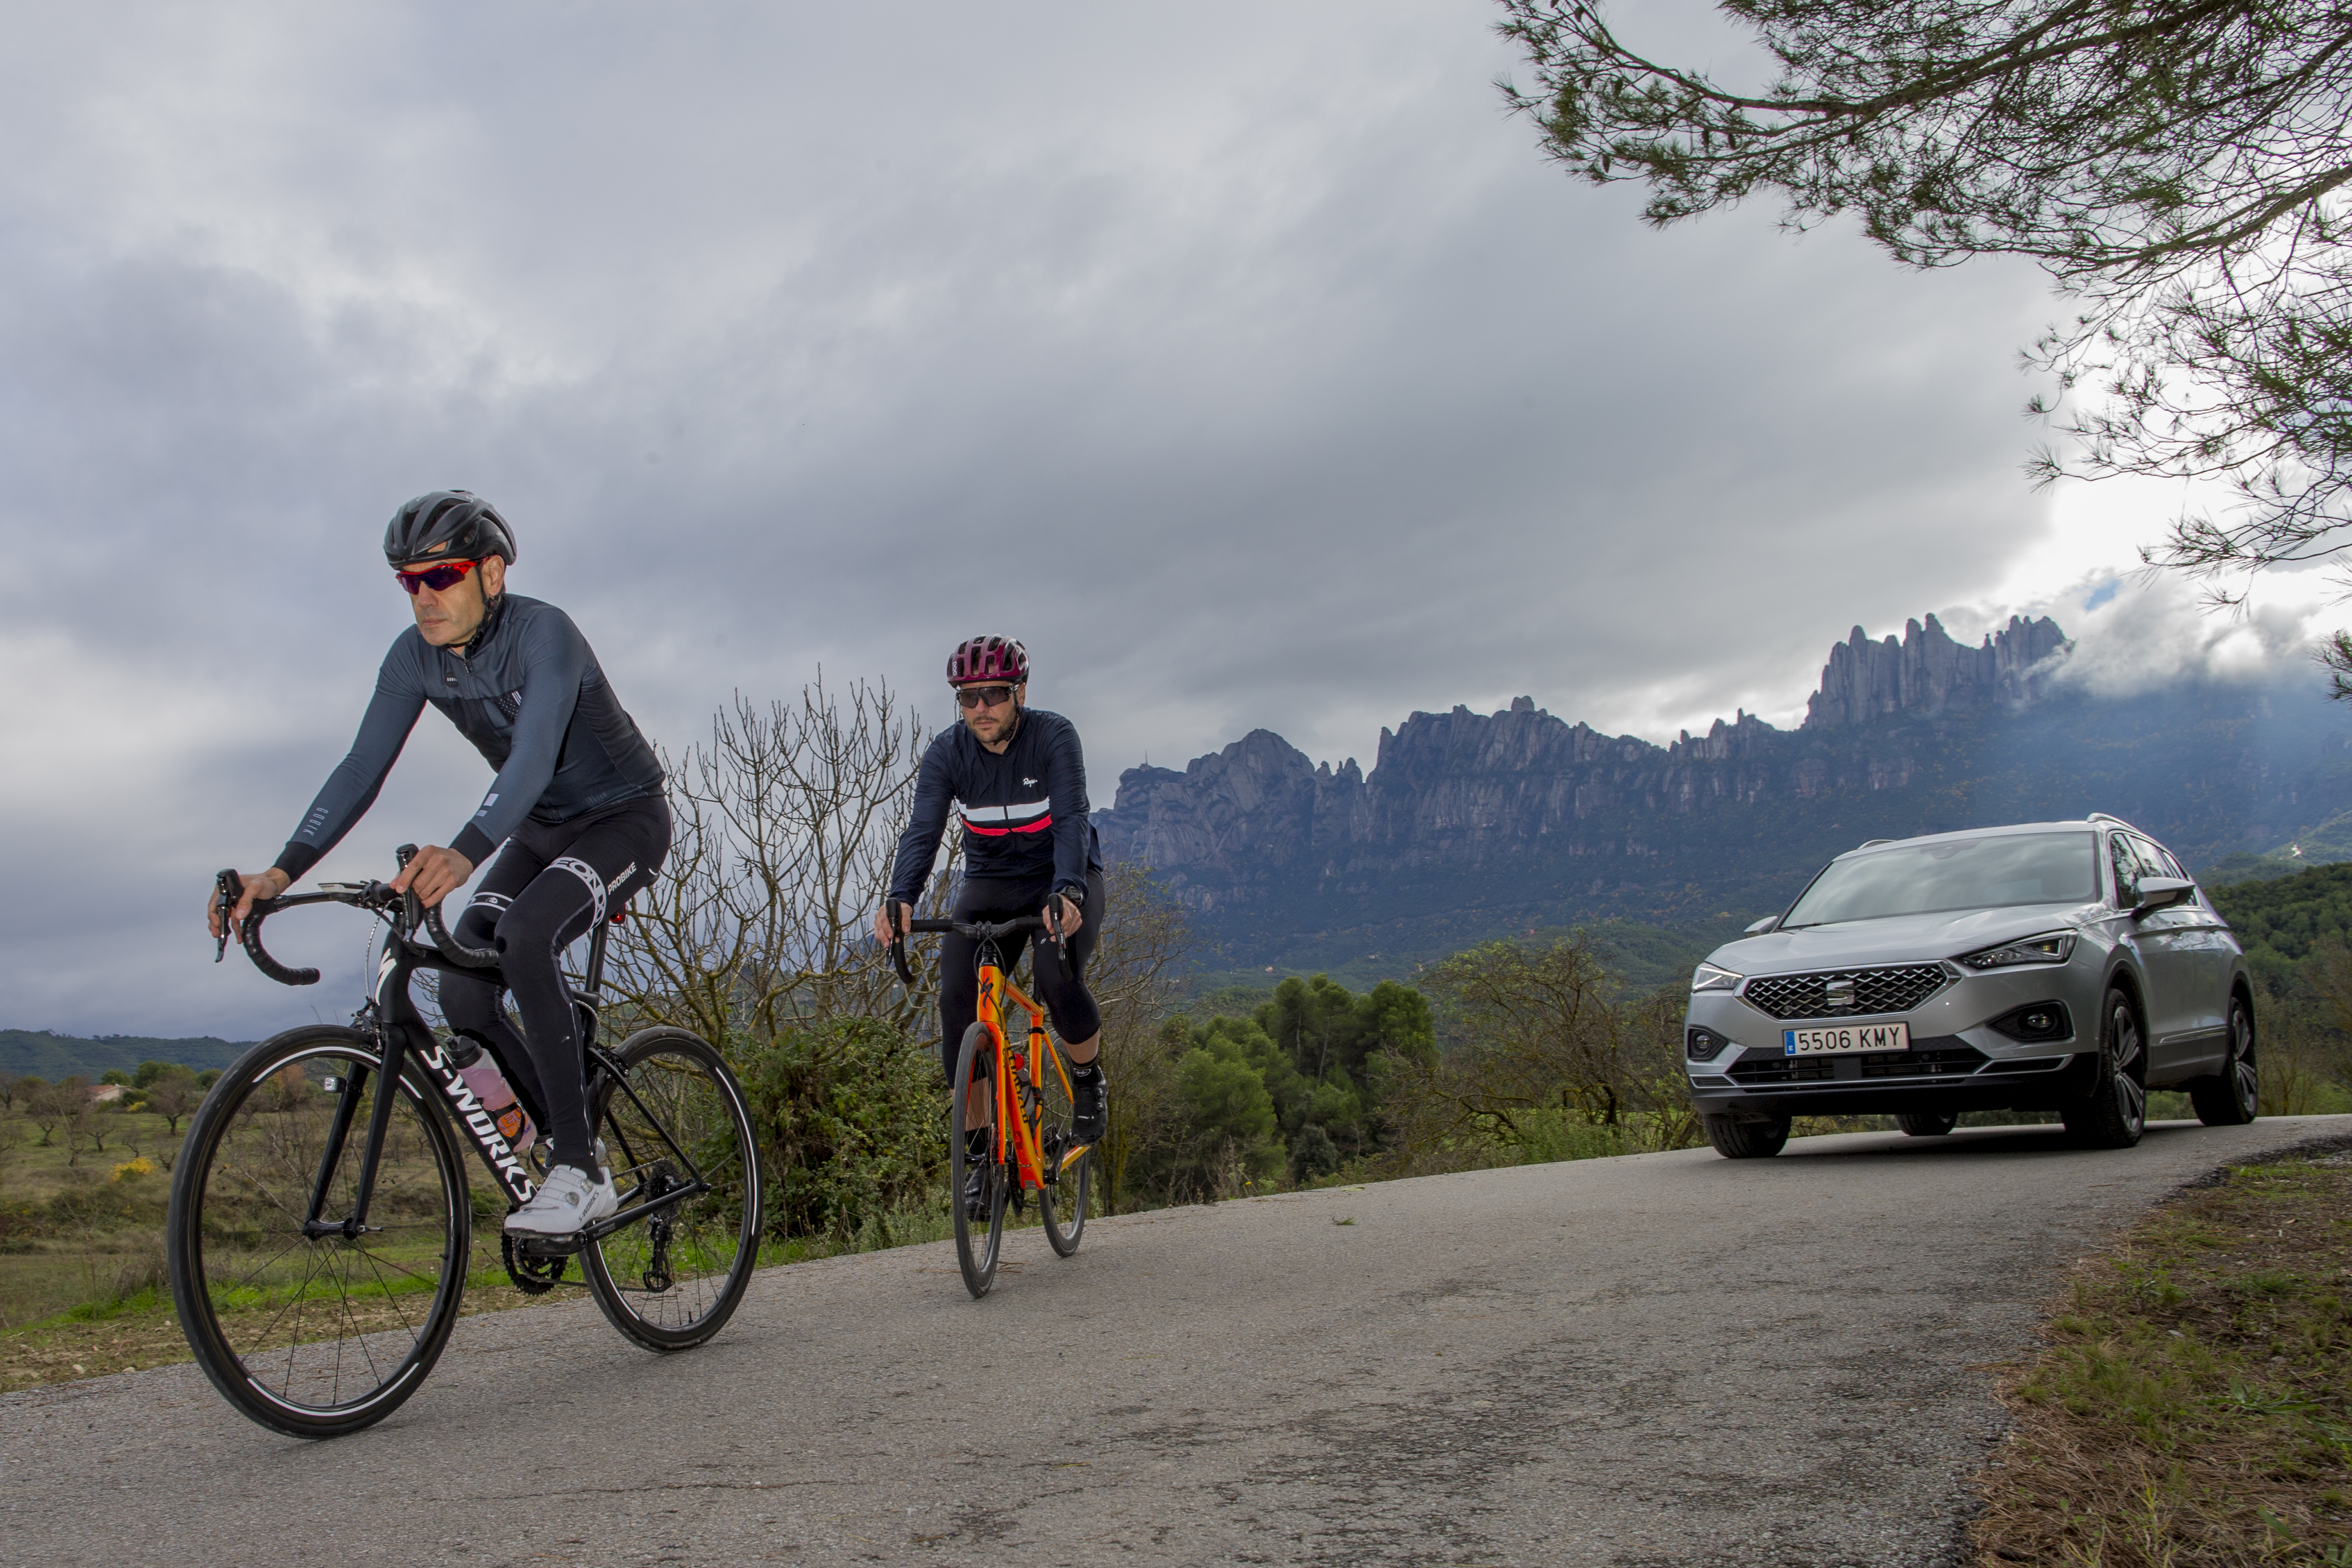 The new SEAT Tarraco includes an assistant that detects the presence of cyclists